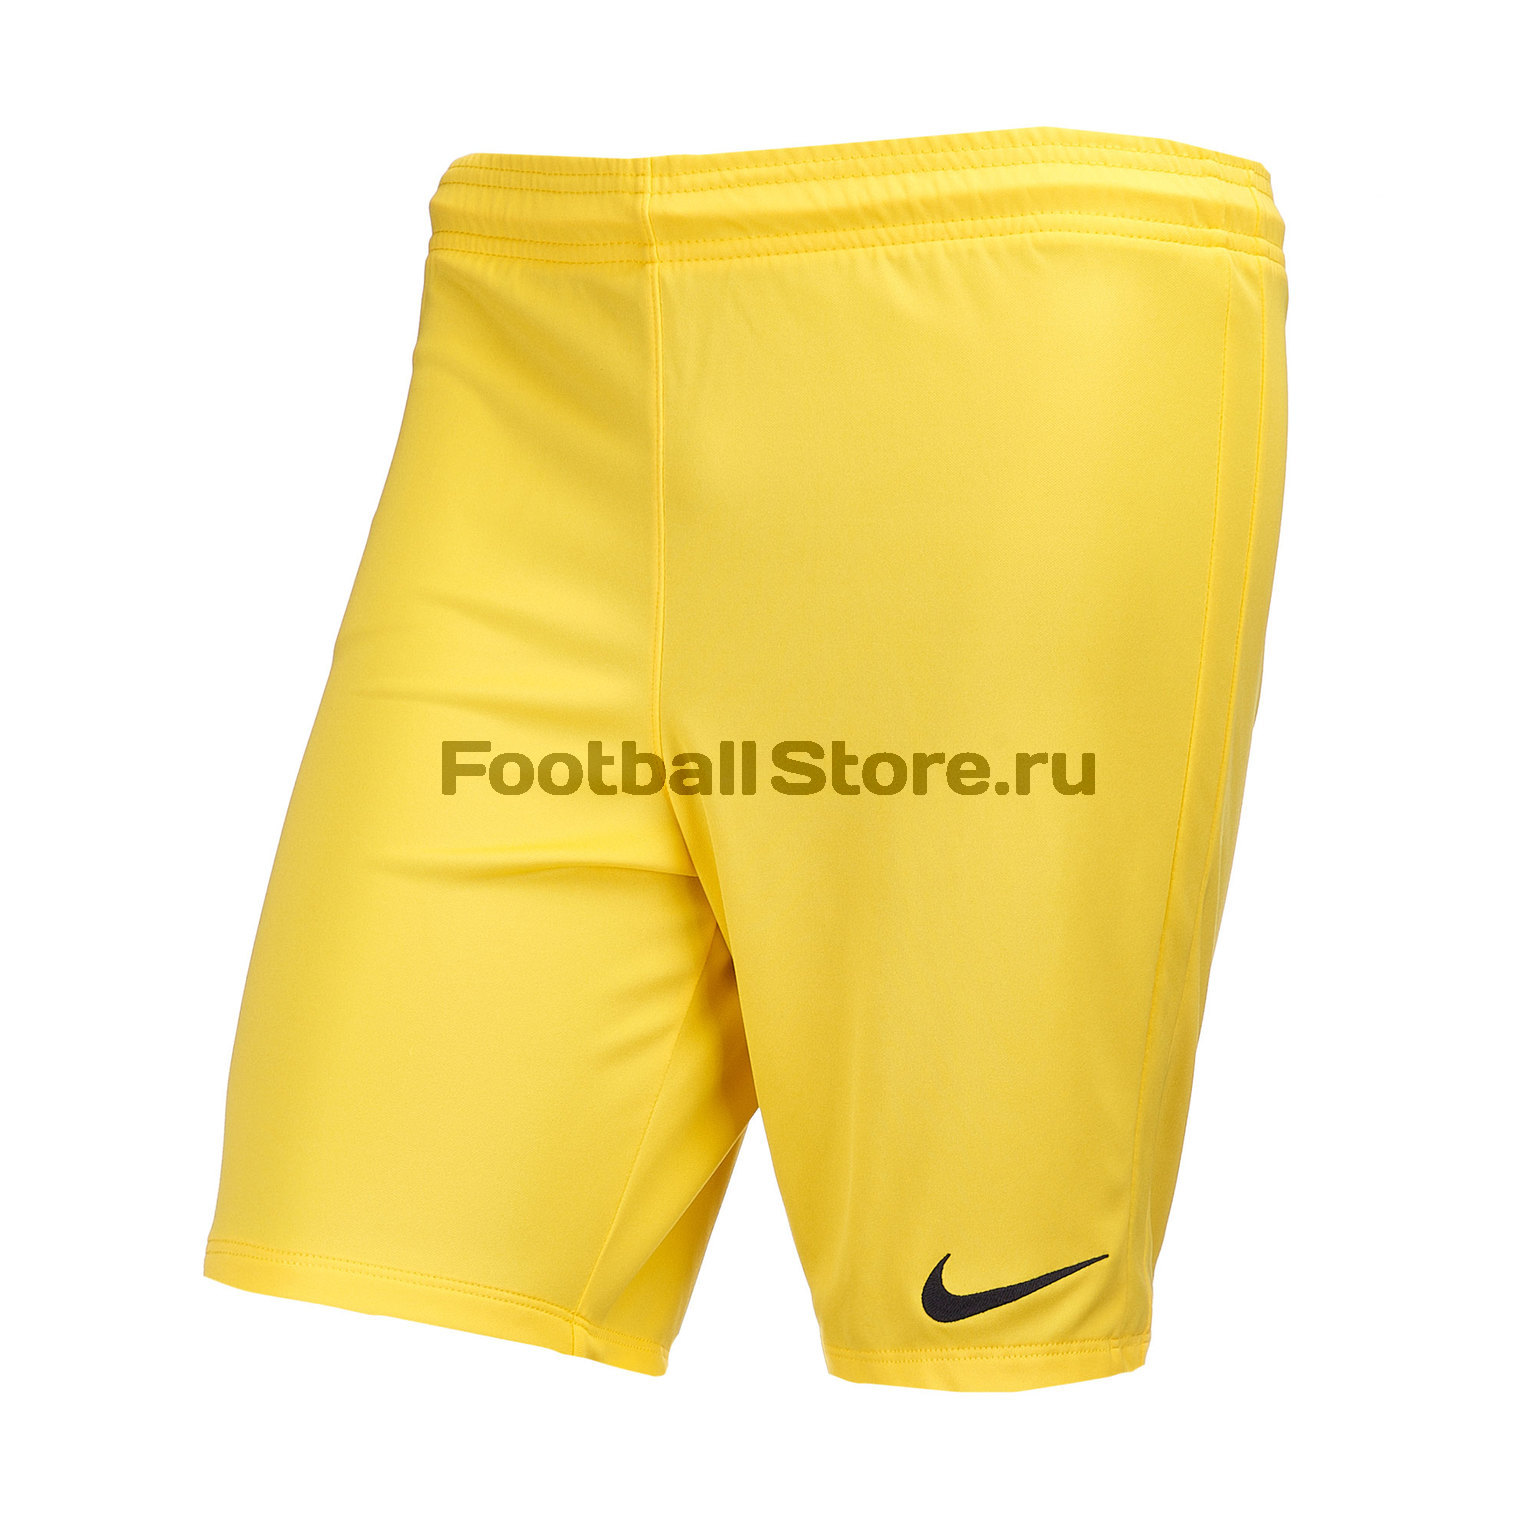 Игровые шорты Nike League Knit Short NB 725881-719